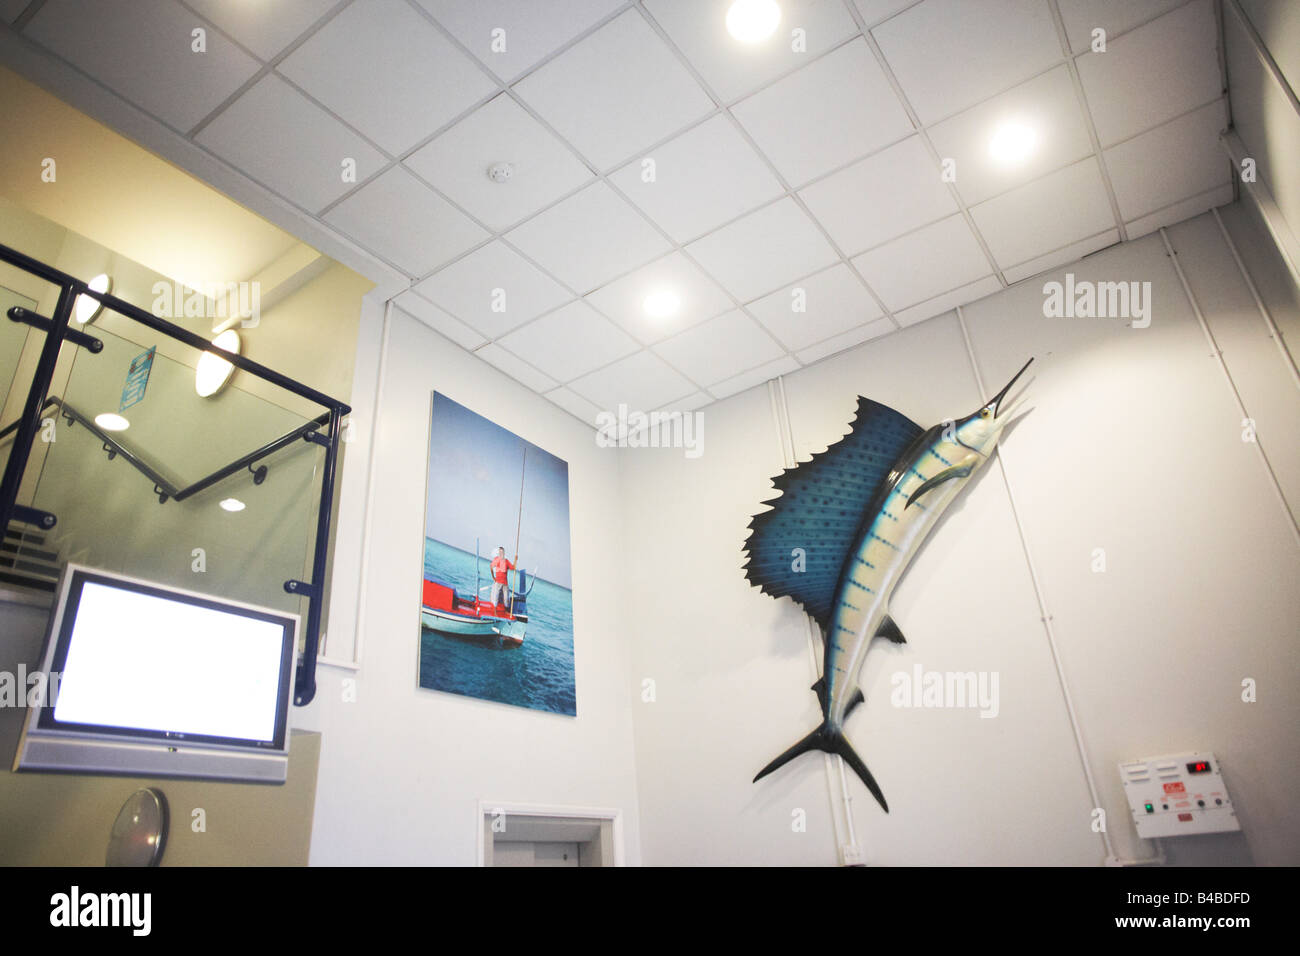 A model sailfish above main entrance atrium of New England Seafoods, importers of line-caught fish products from - Stock Image